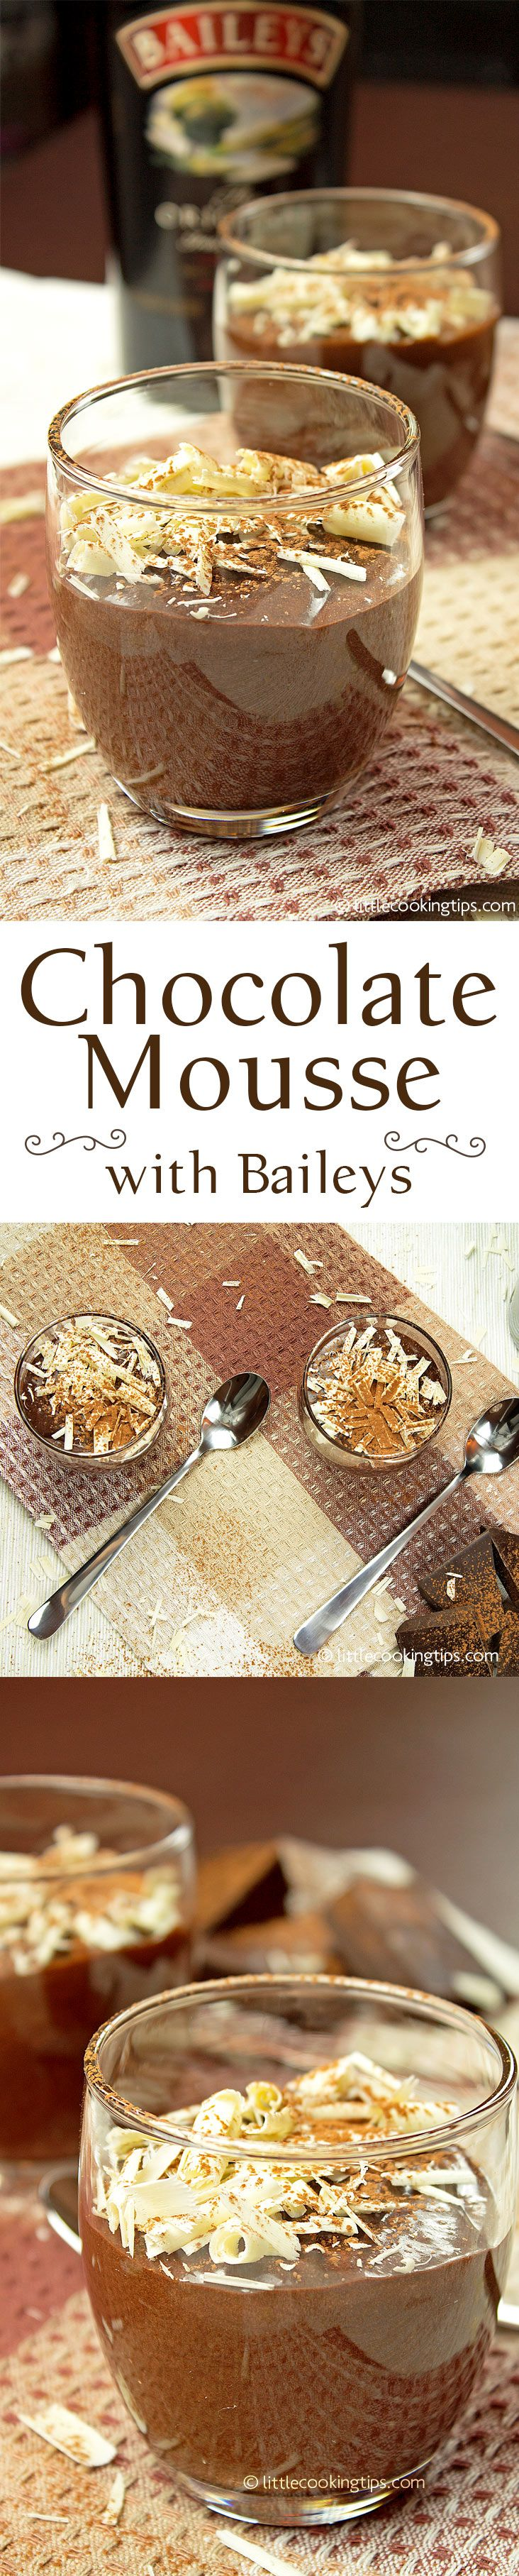 Chocolate mousse is one of those easy desserts you can try if you're new to the kitchen. It's simple and easy to follow, with very few ingredients. This chocolate mousse with Baileys is a must-try for every chocolate lover: decadent, rich, thick and delicious! #chocolate #mousse #Baileys #desserts